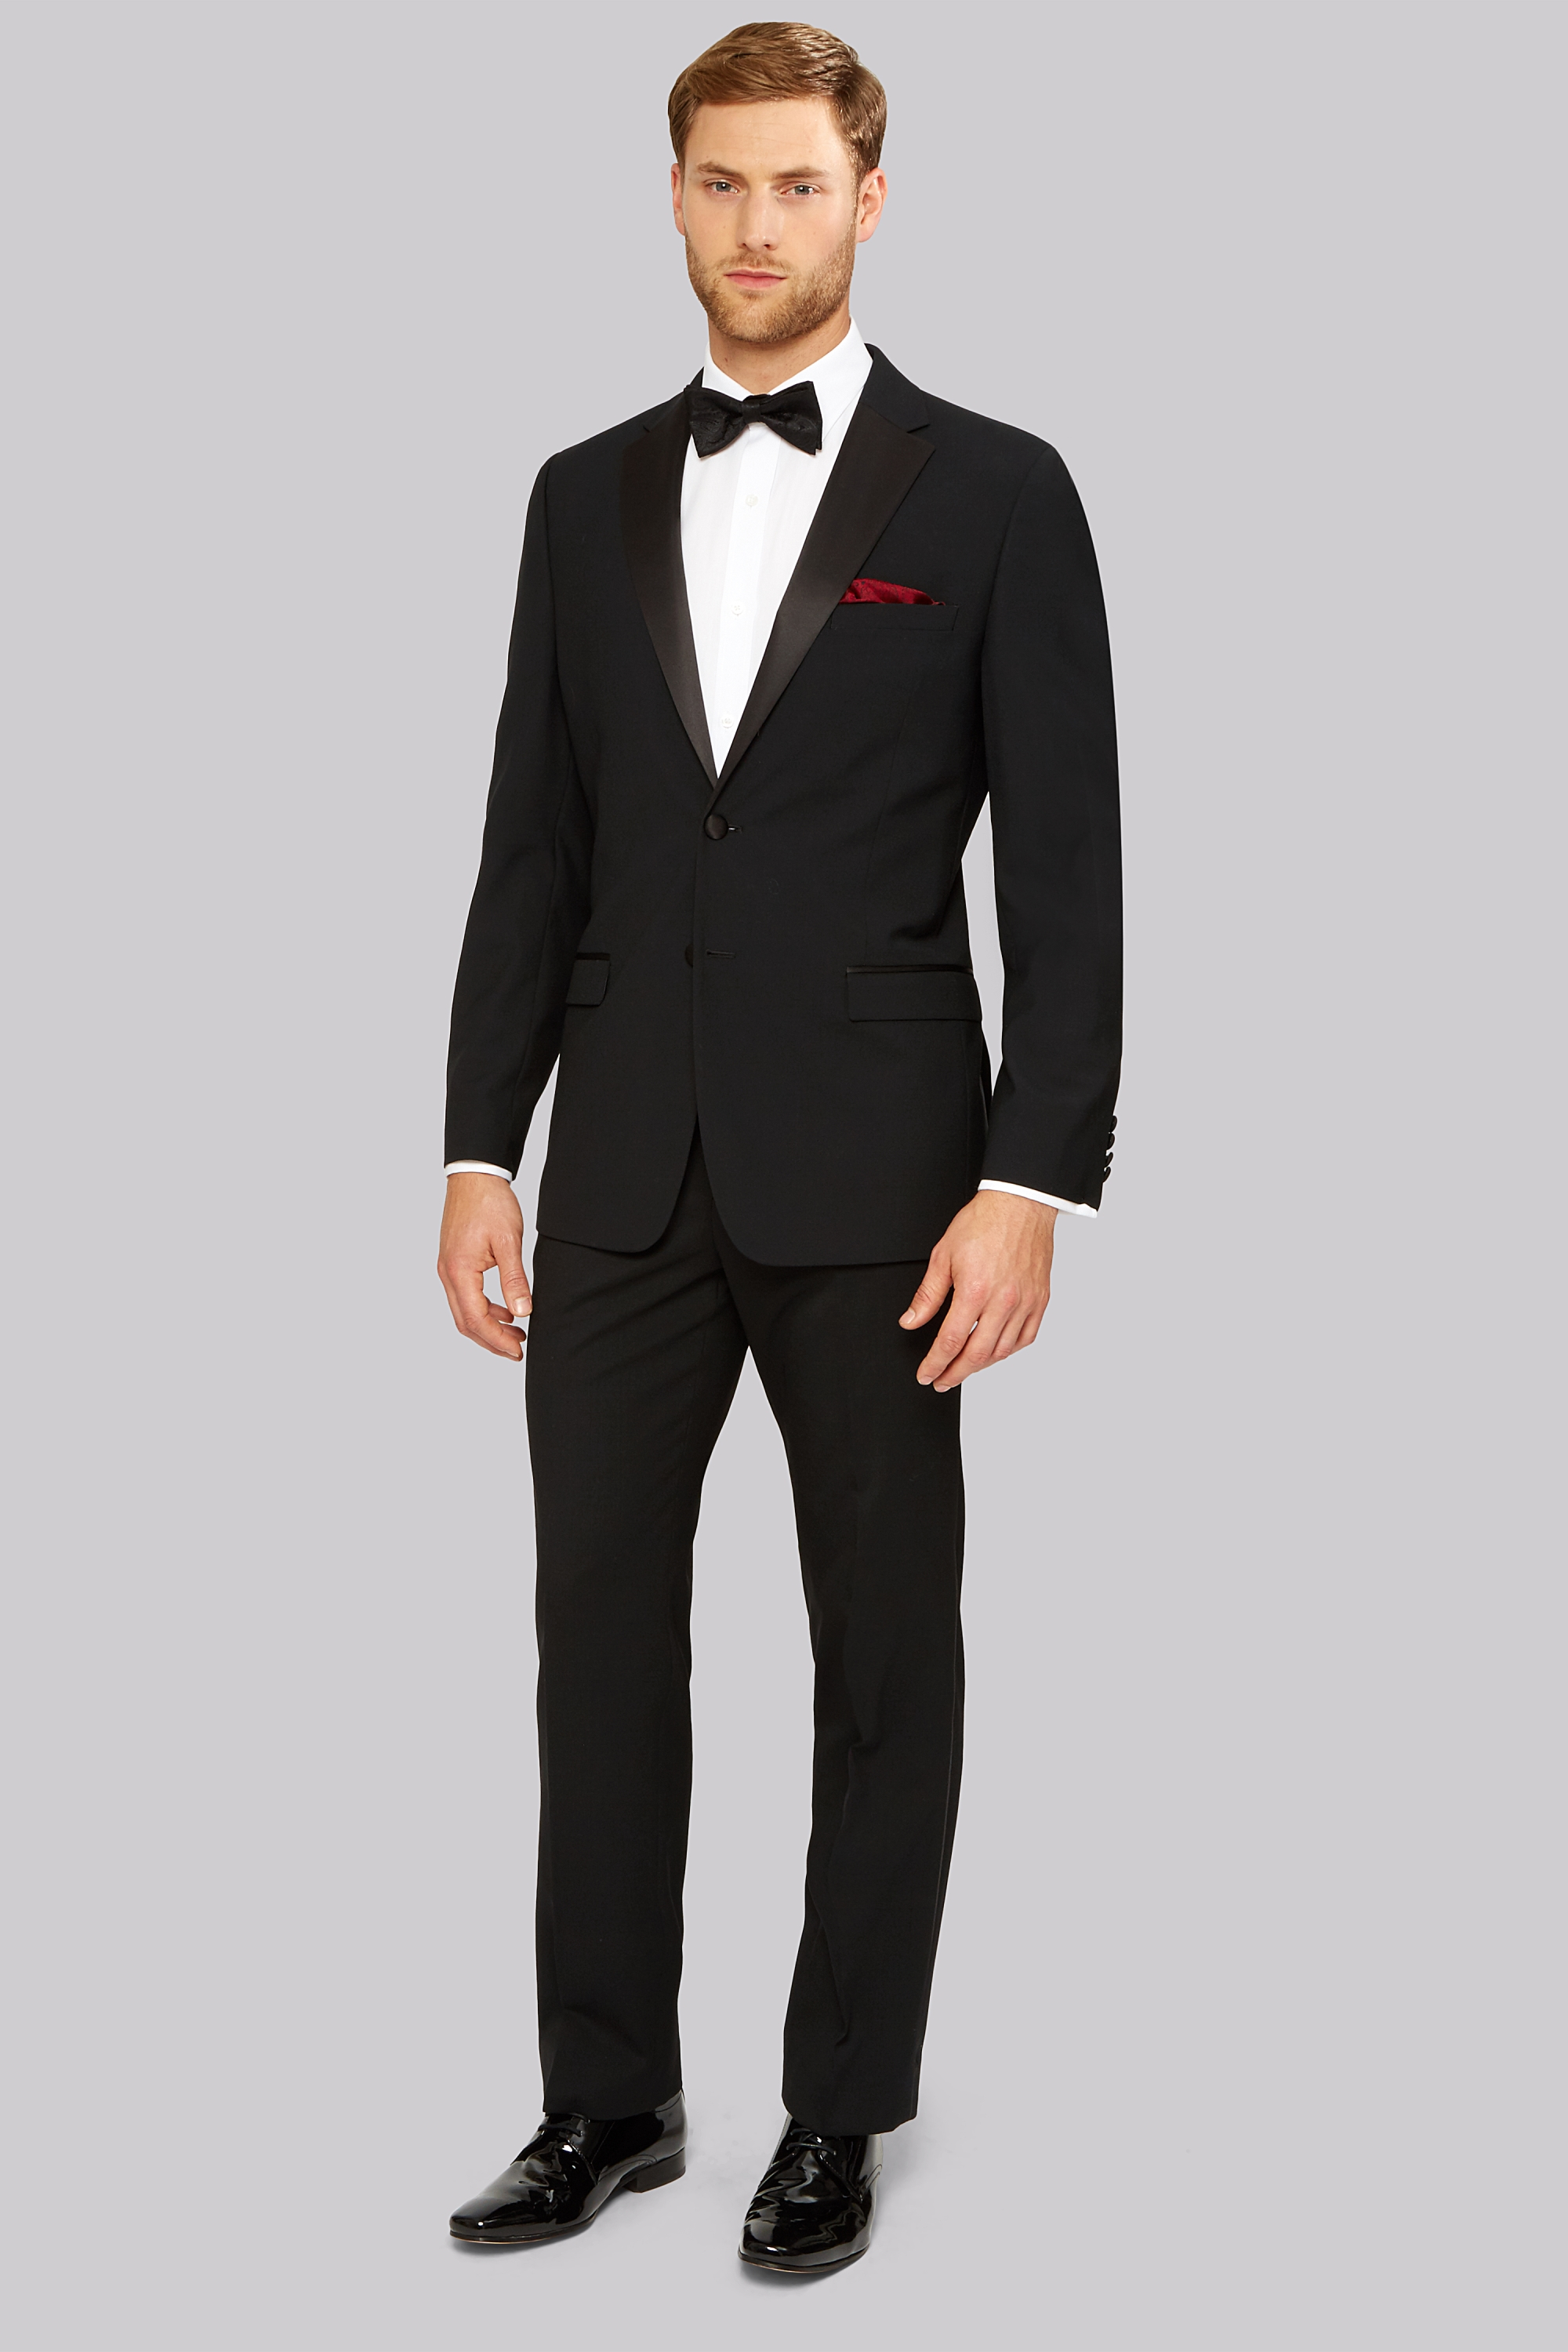 Shop for men's tuxedos, black tie, tuxedo jackets & accessories including formal shirts, pants, shoes, vests, cummerbunds & more at Men's Wearhouse. $30 off select tuxedo and suit rentals. Free shipping on every online order, no minimum. Exclusive offers for members. Close. Close. This text should be replaced in js.